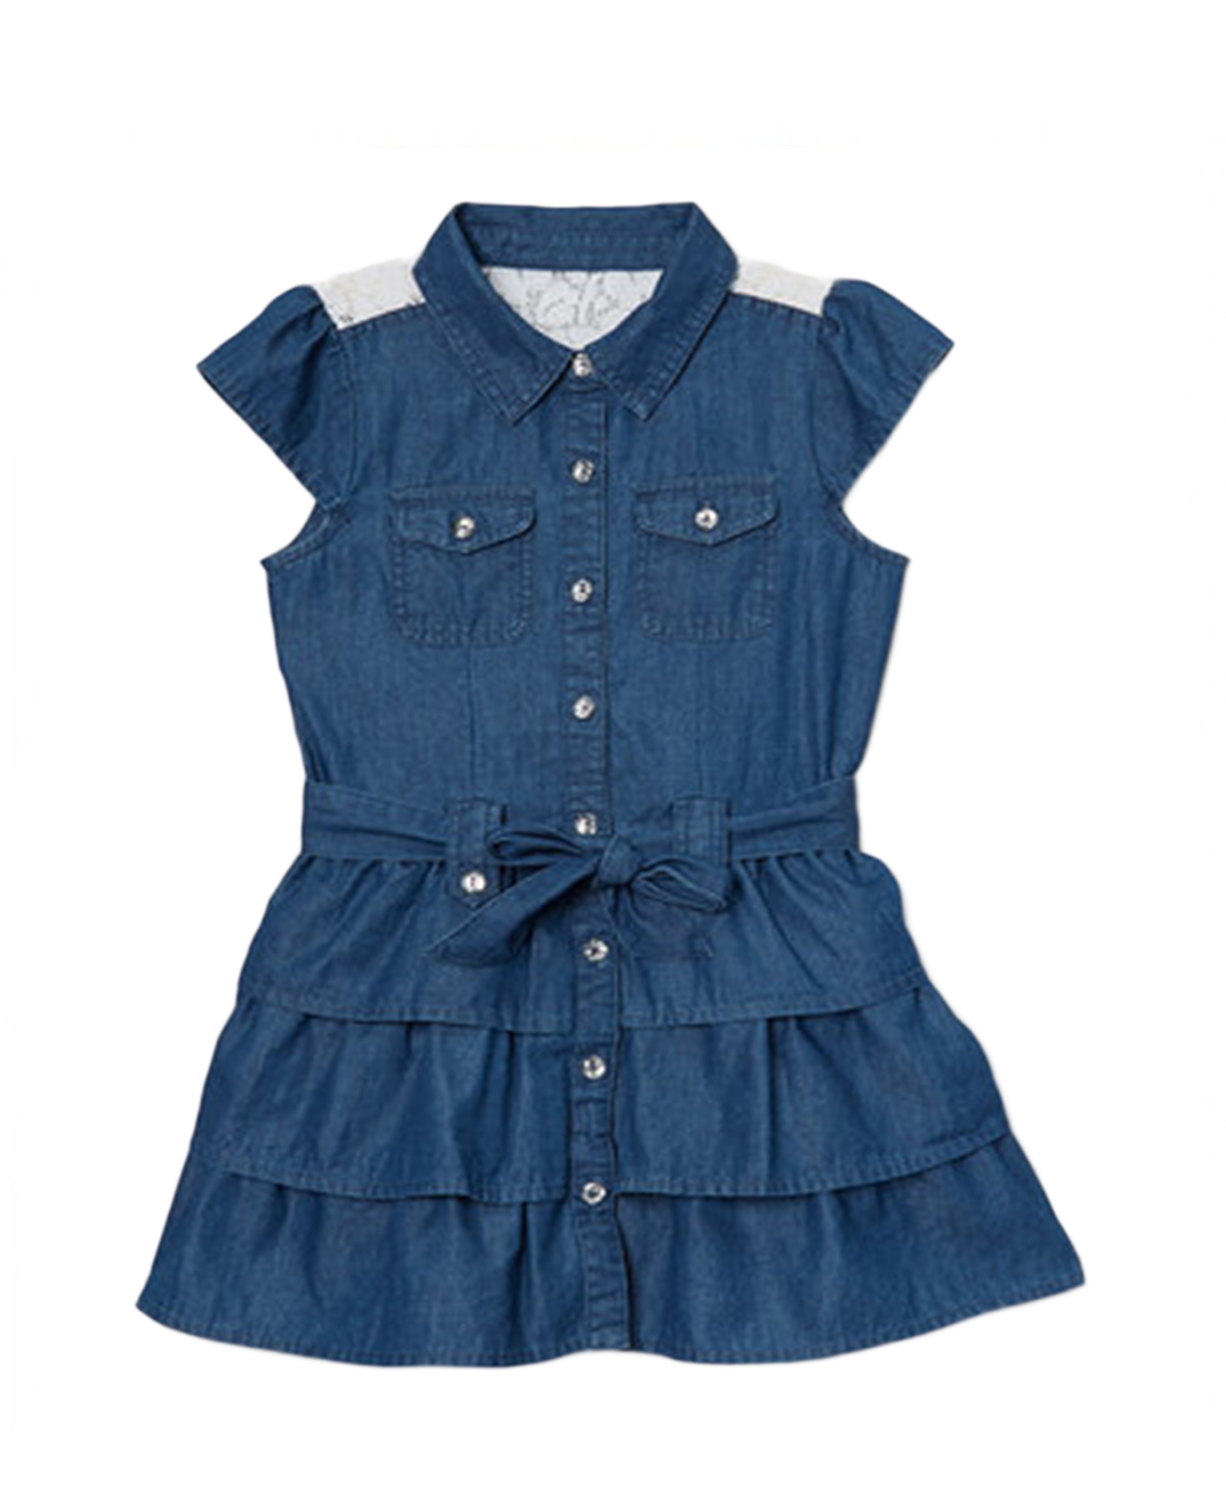 » For Sale Mini Boden Adventure Denim Overall Dress (Toddler Girls, Little Girls Big Girls) by All Kids Sale, Threads Clothing Exchange is a buy / sell / trade women's and juniors new, used and vintage clothing boutique.